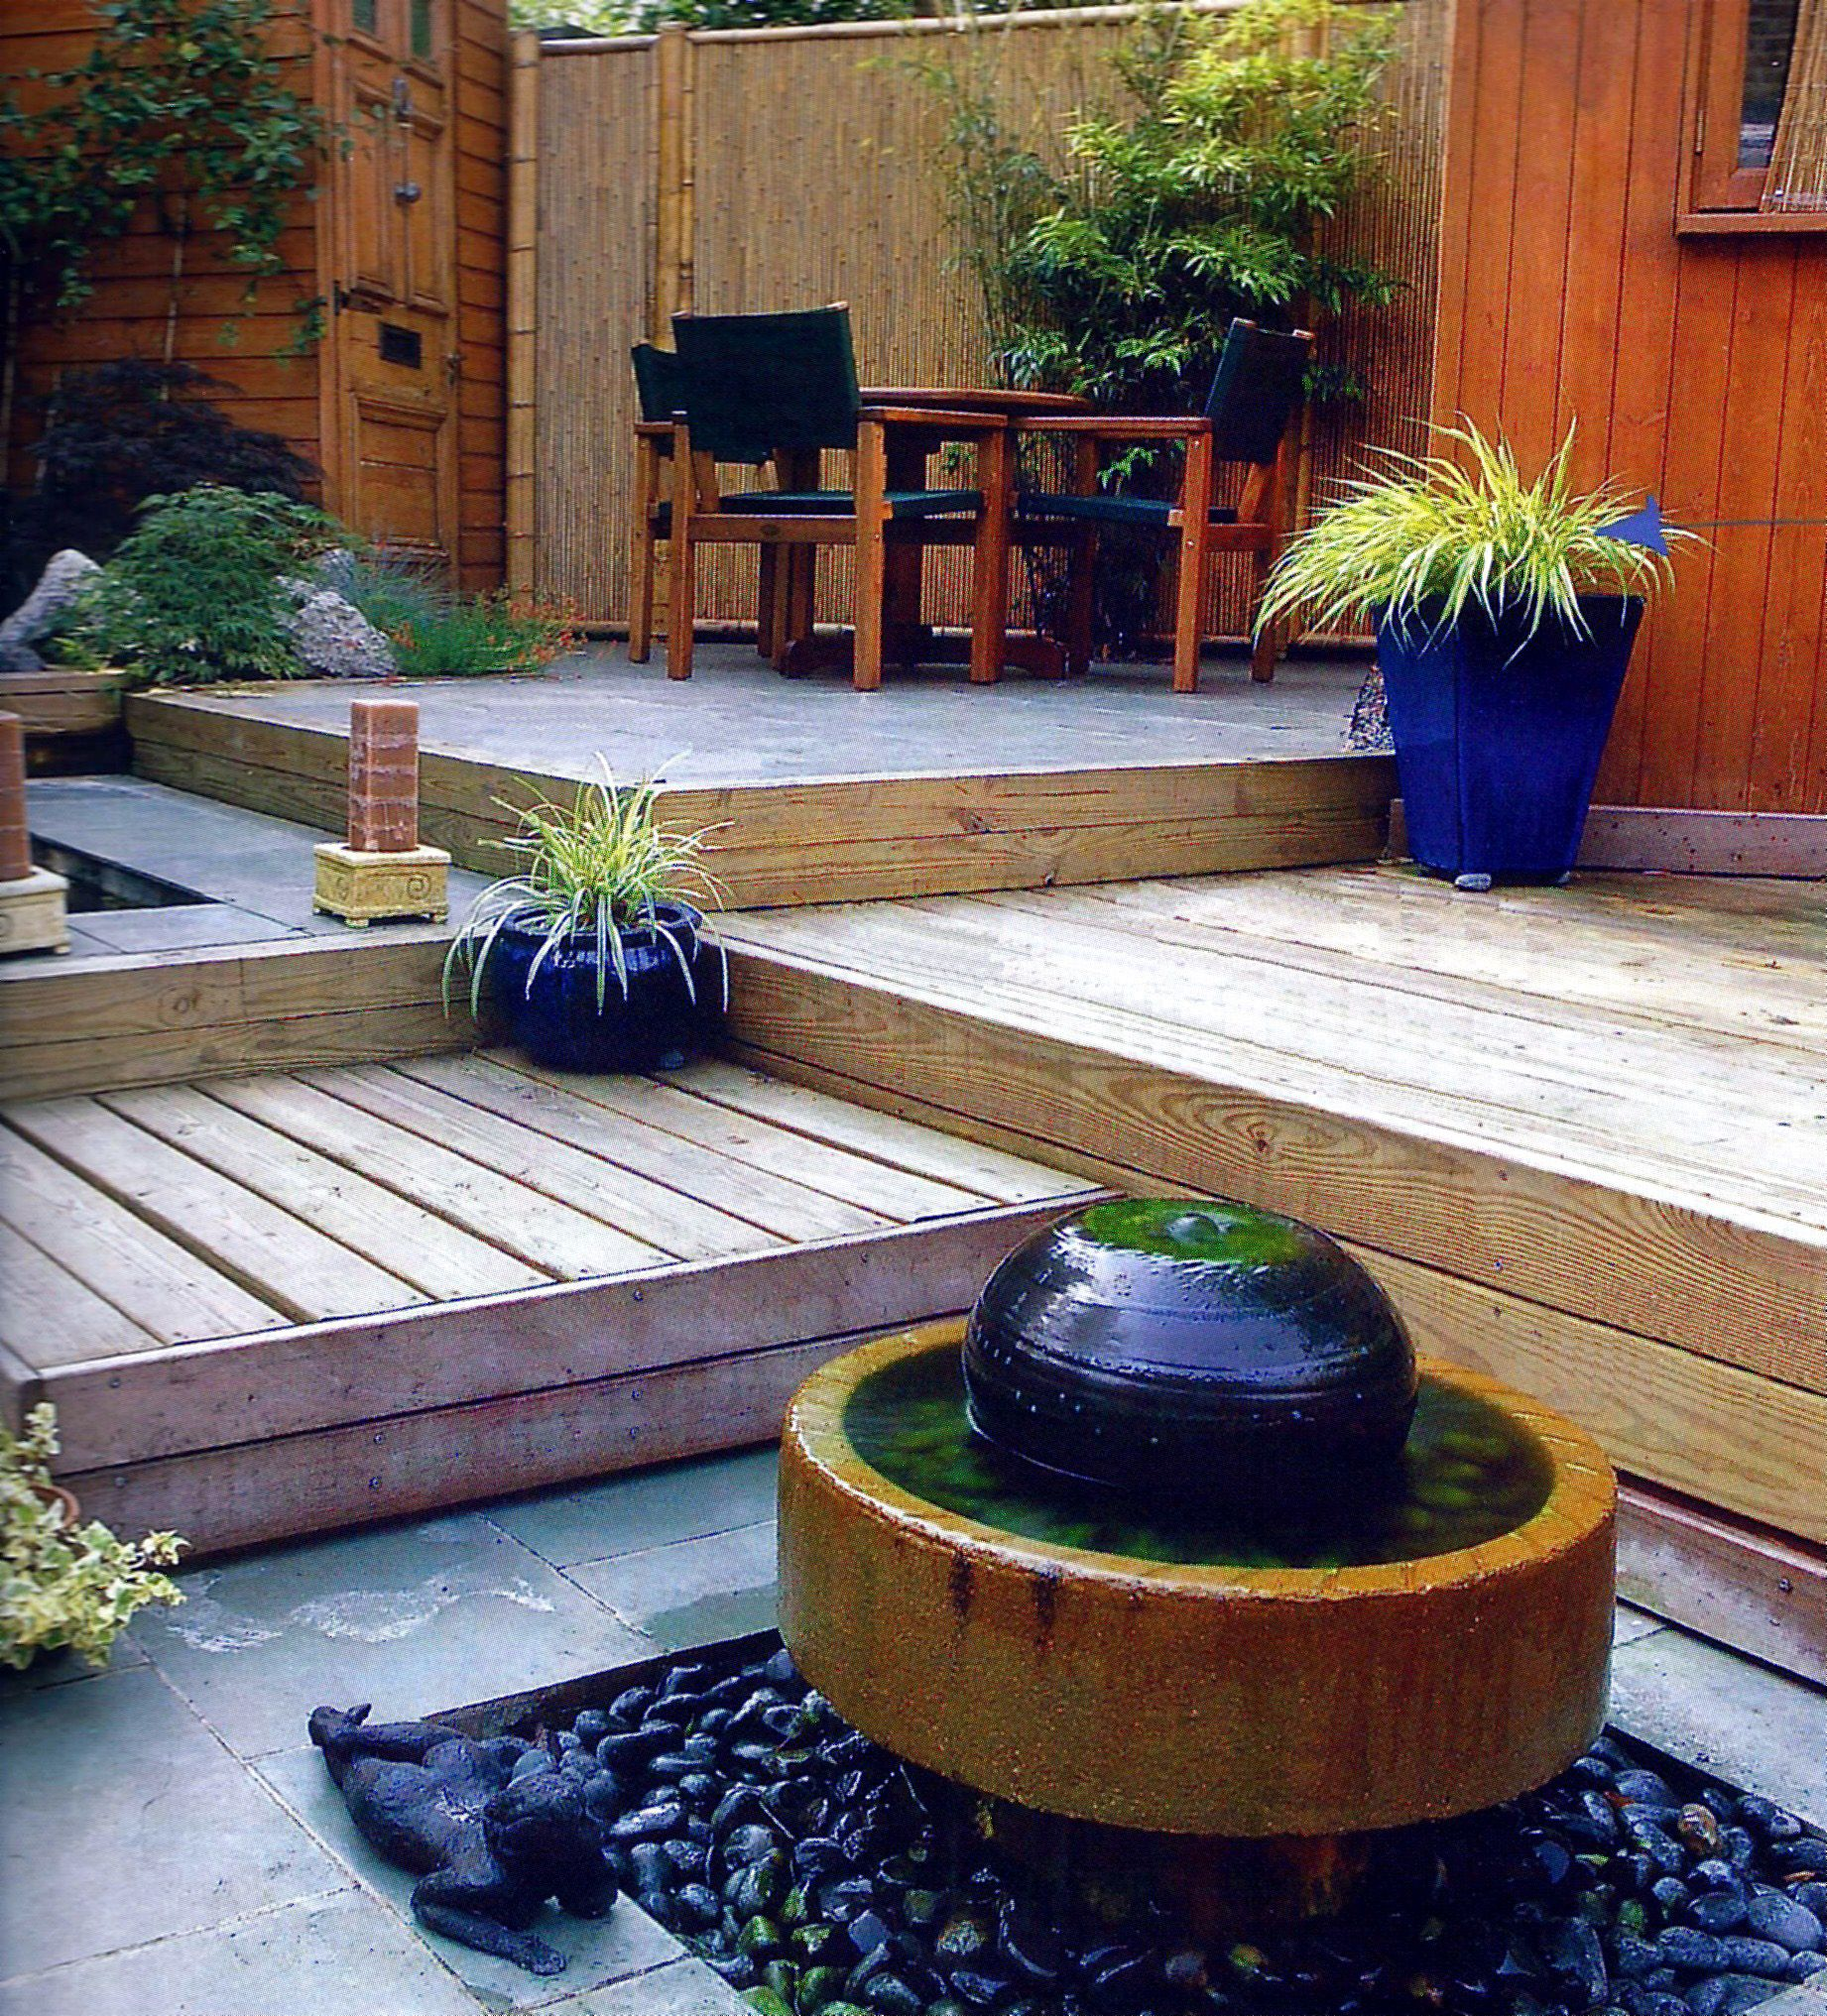 Multi level wooden deck with water features